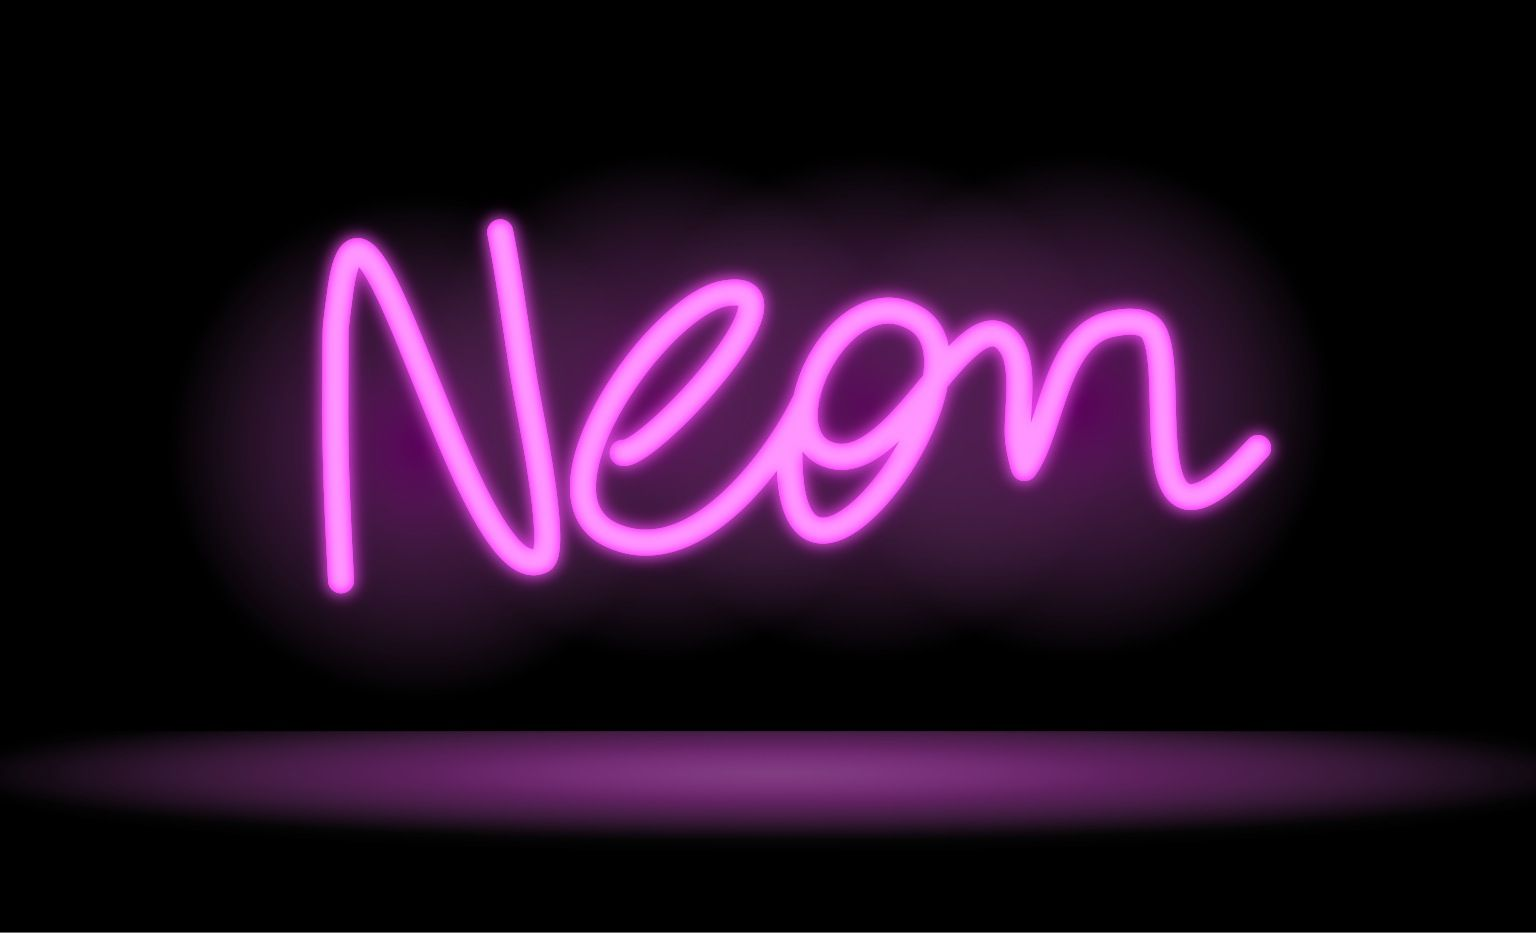 1536x933 Neon Signs Drawing A Neon Sign In Inkpad Neon Paradise